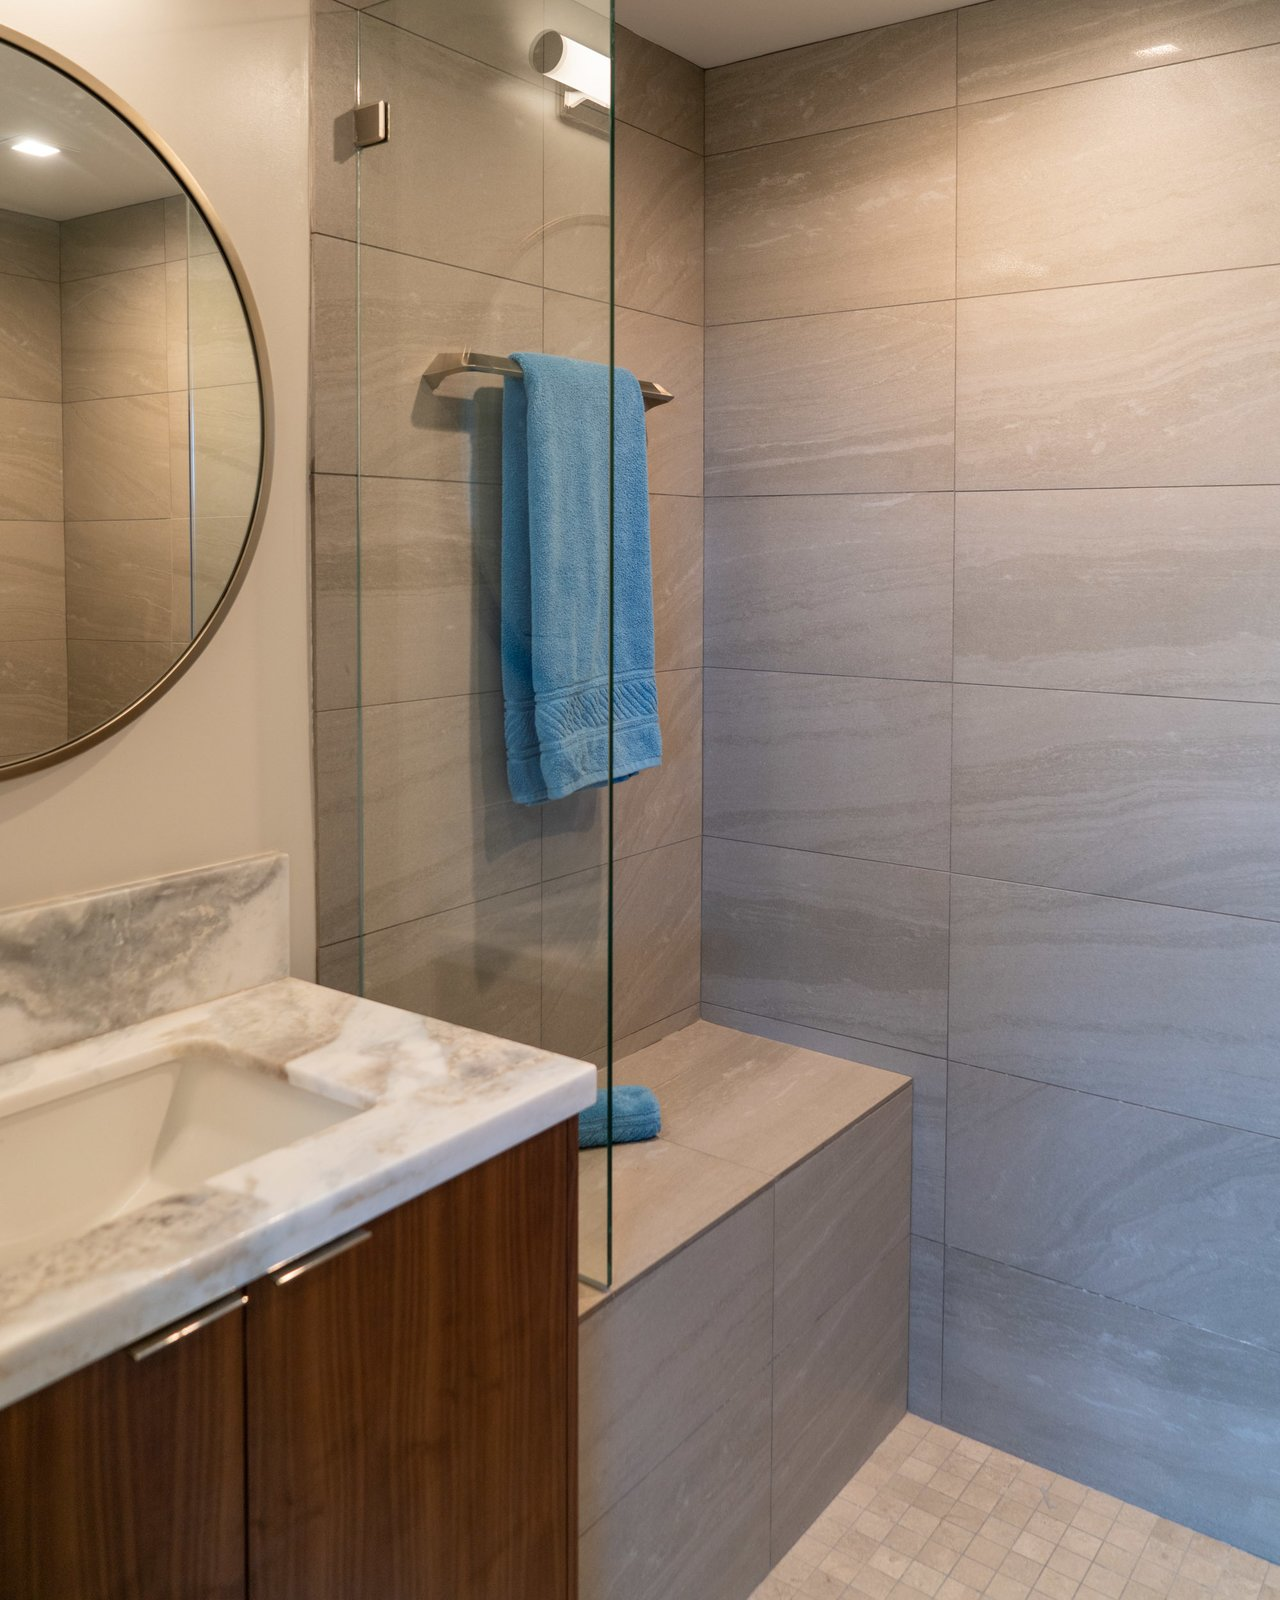 Bath Room, Granite Counter, Recessed Lighting, Undermount Sink, Ceramic Tile Wall, Ceramic Tile Floor, and Open Shower  Scott Residence by District Architecture + Design